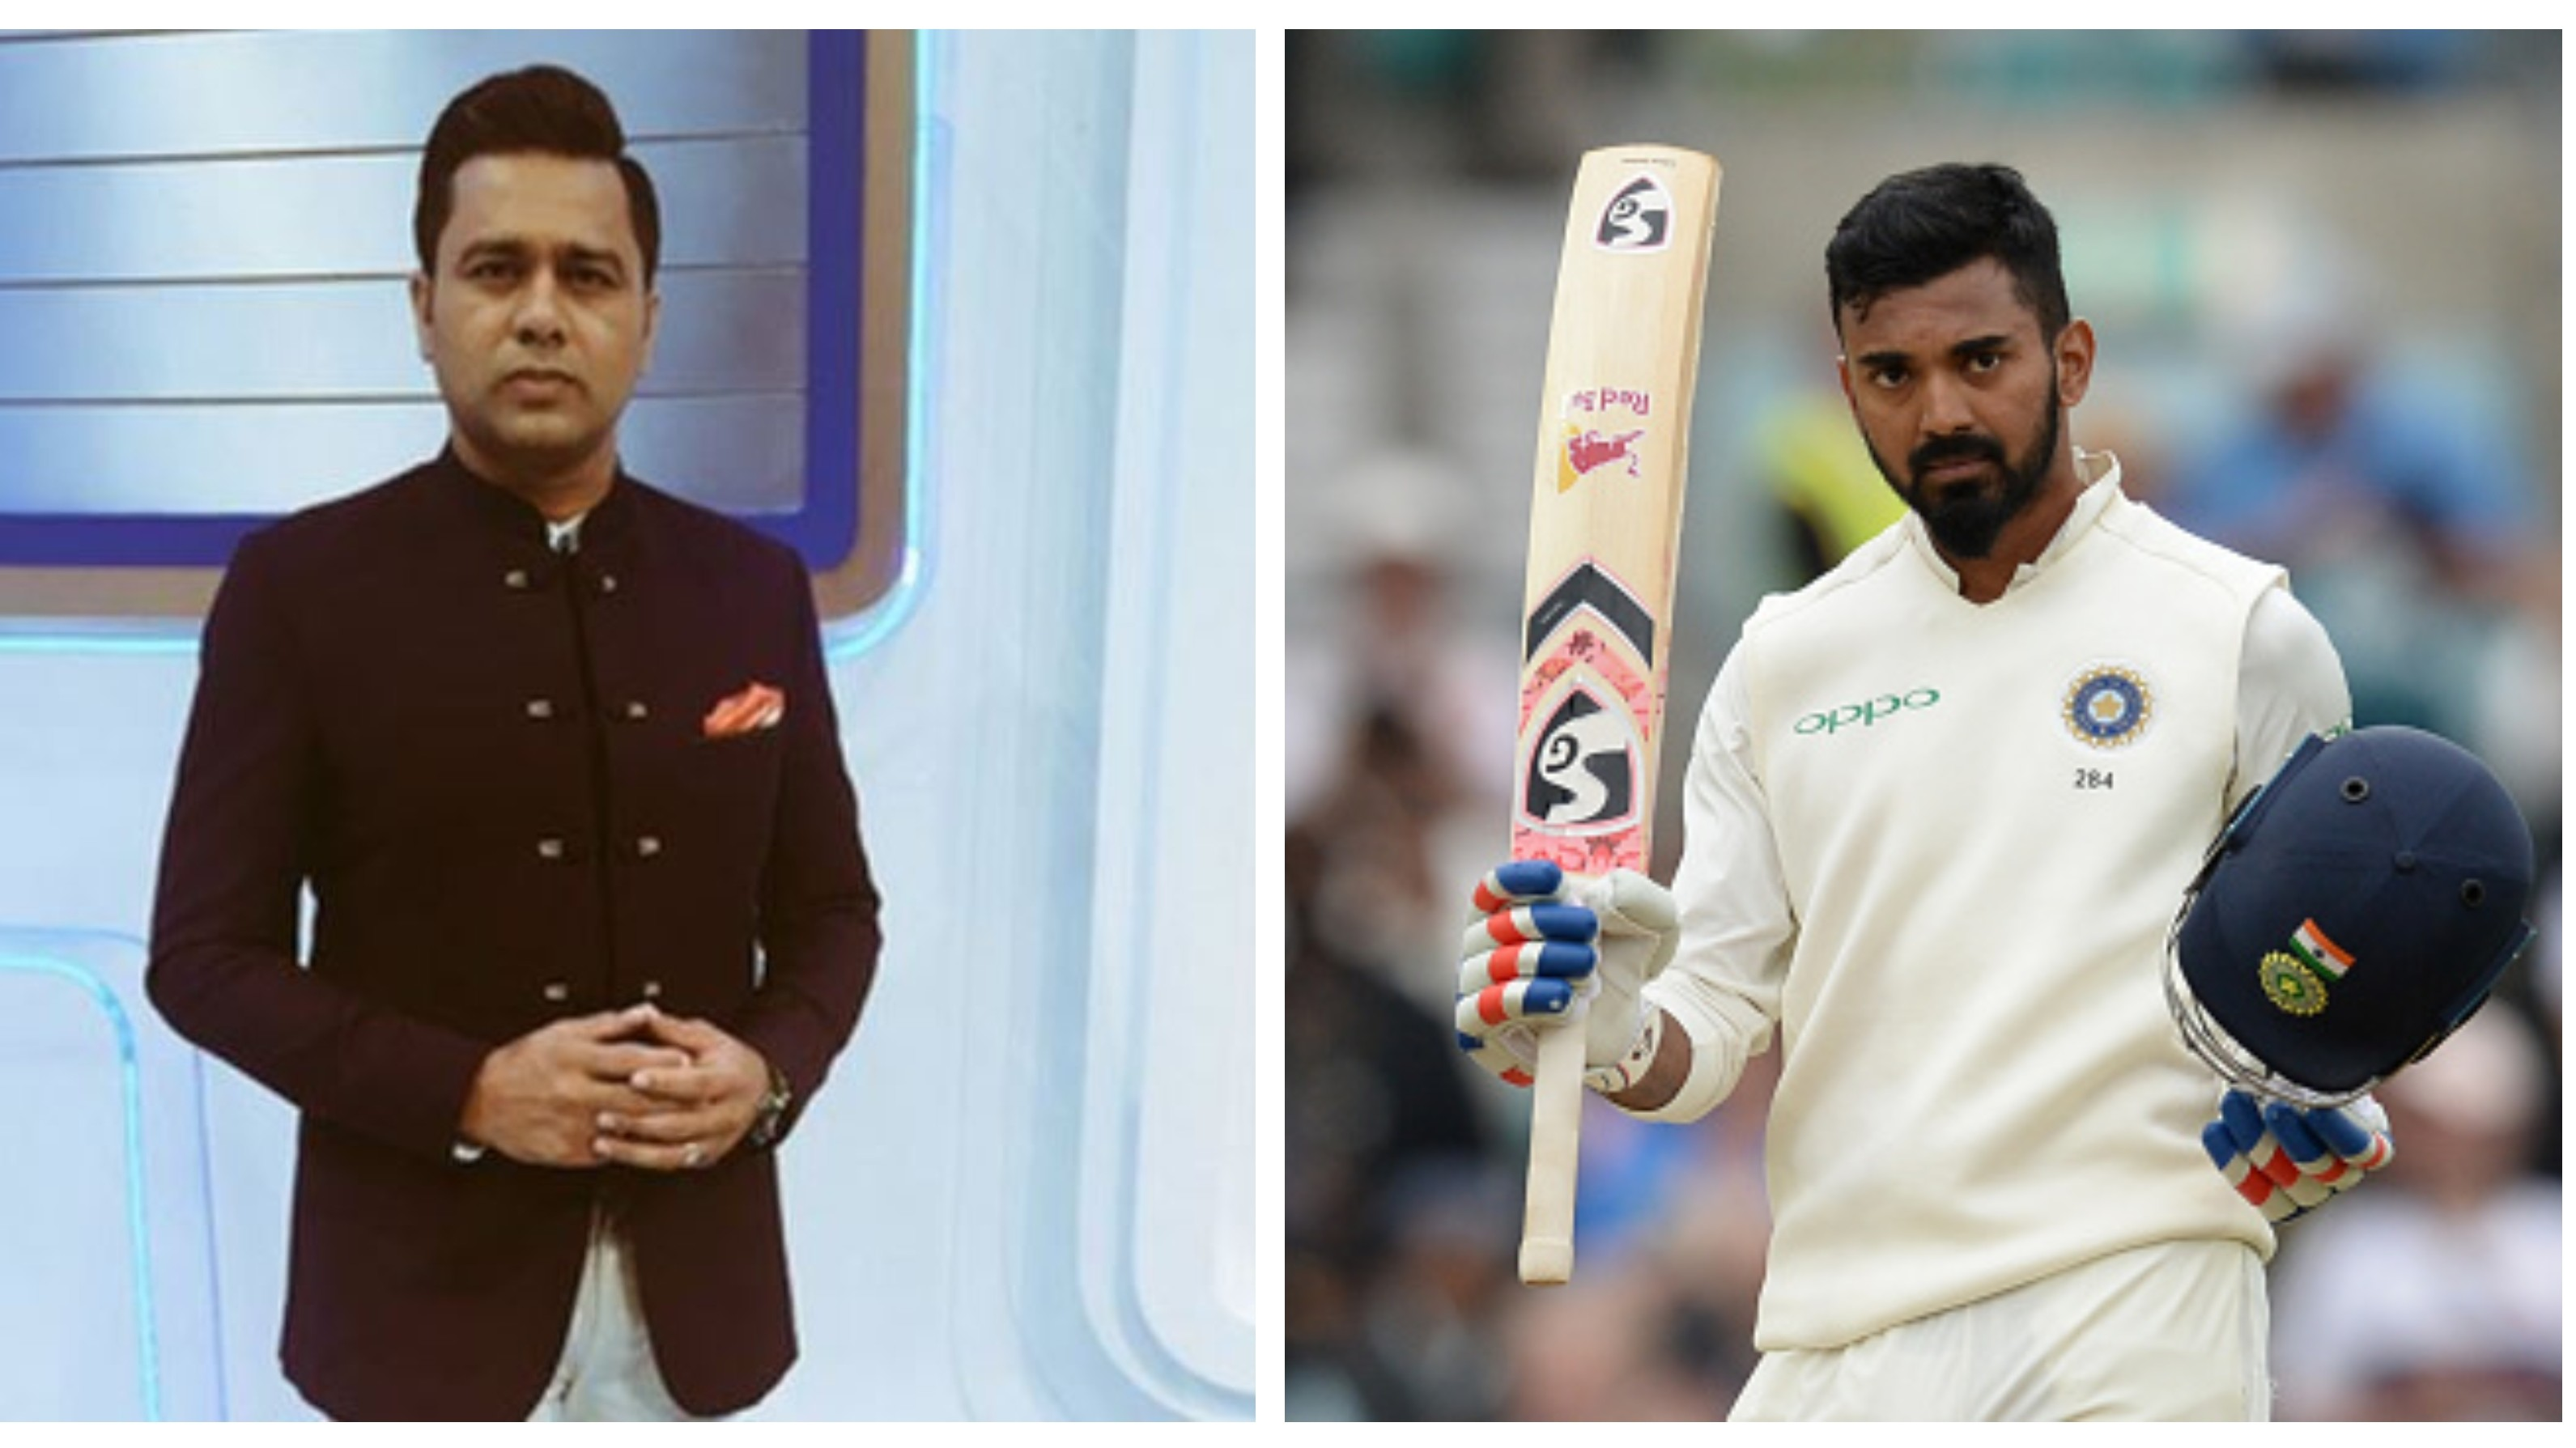 AUS v IND 2020-21: Aakash Chopra defends KL Rahul's return to the Test side amidst criticism